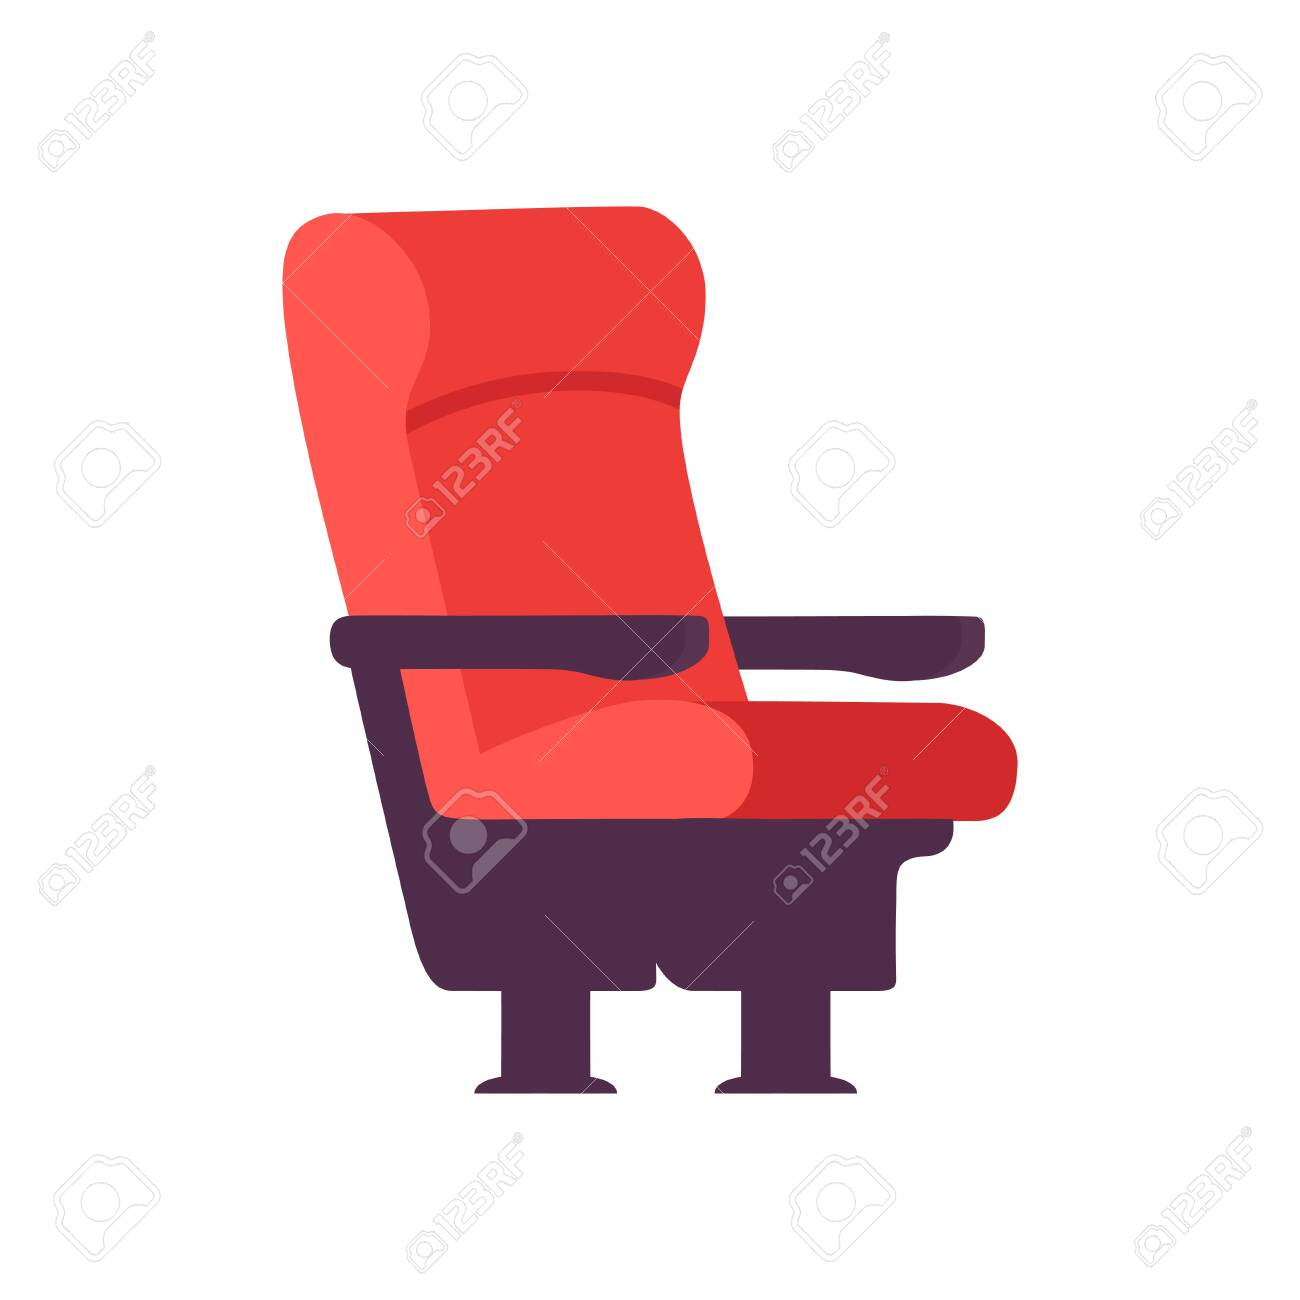 Empty Red Comfortable Chair Cinema Movie Theater Seat Vector Royalty Free Cliparts Vectors And Stock Illustration Image 124143423